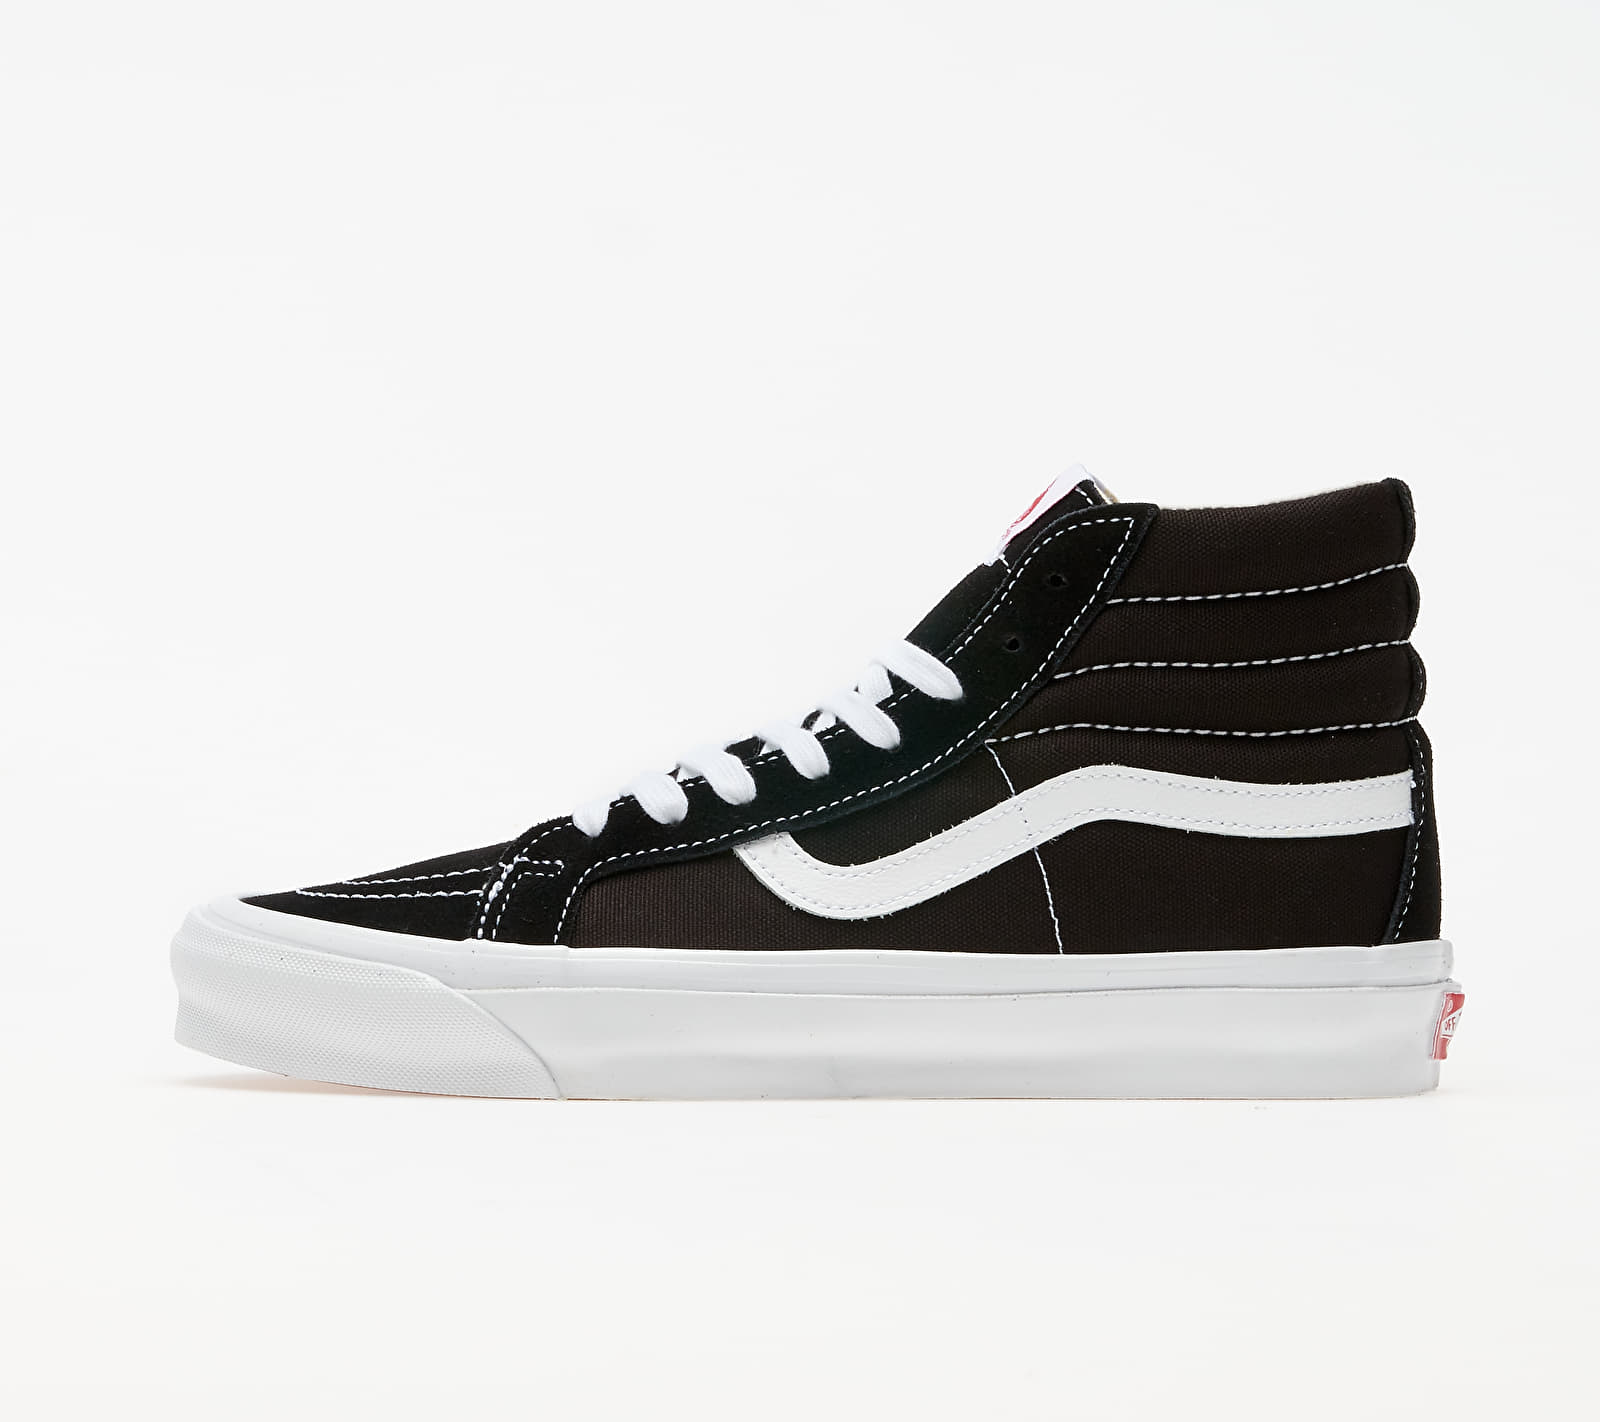 Vans Vault OG Sk8-Hi LX (Suede/ Canvas) Black/ True White EUR 42